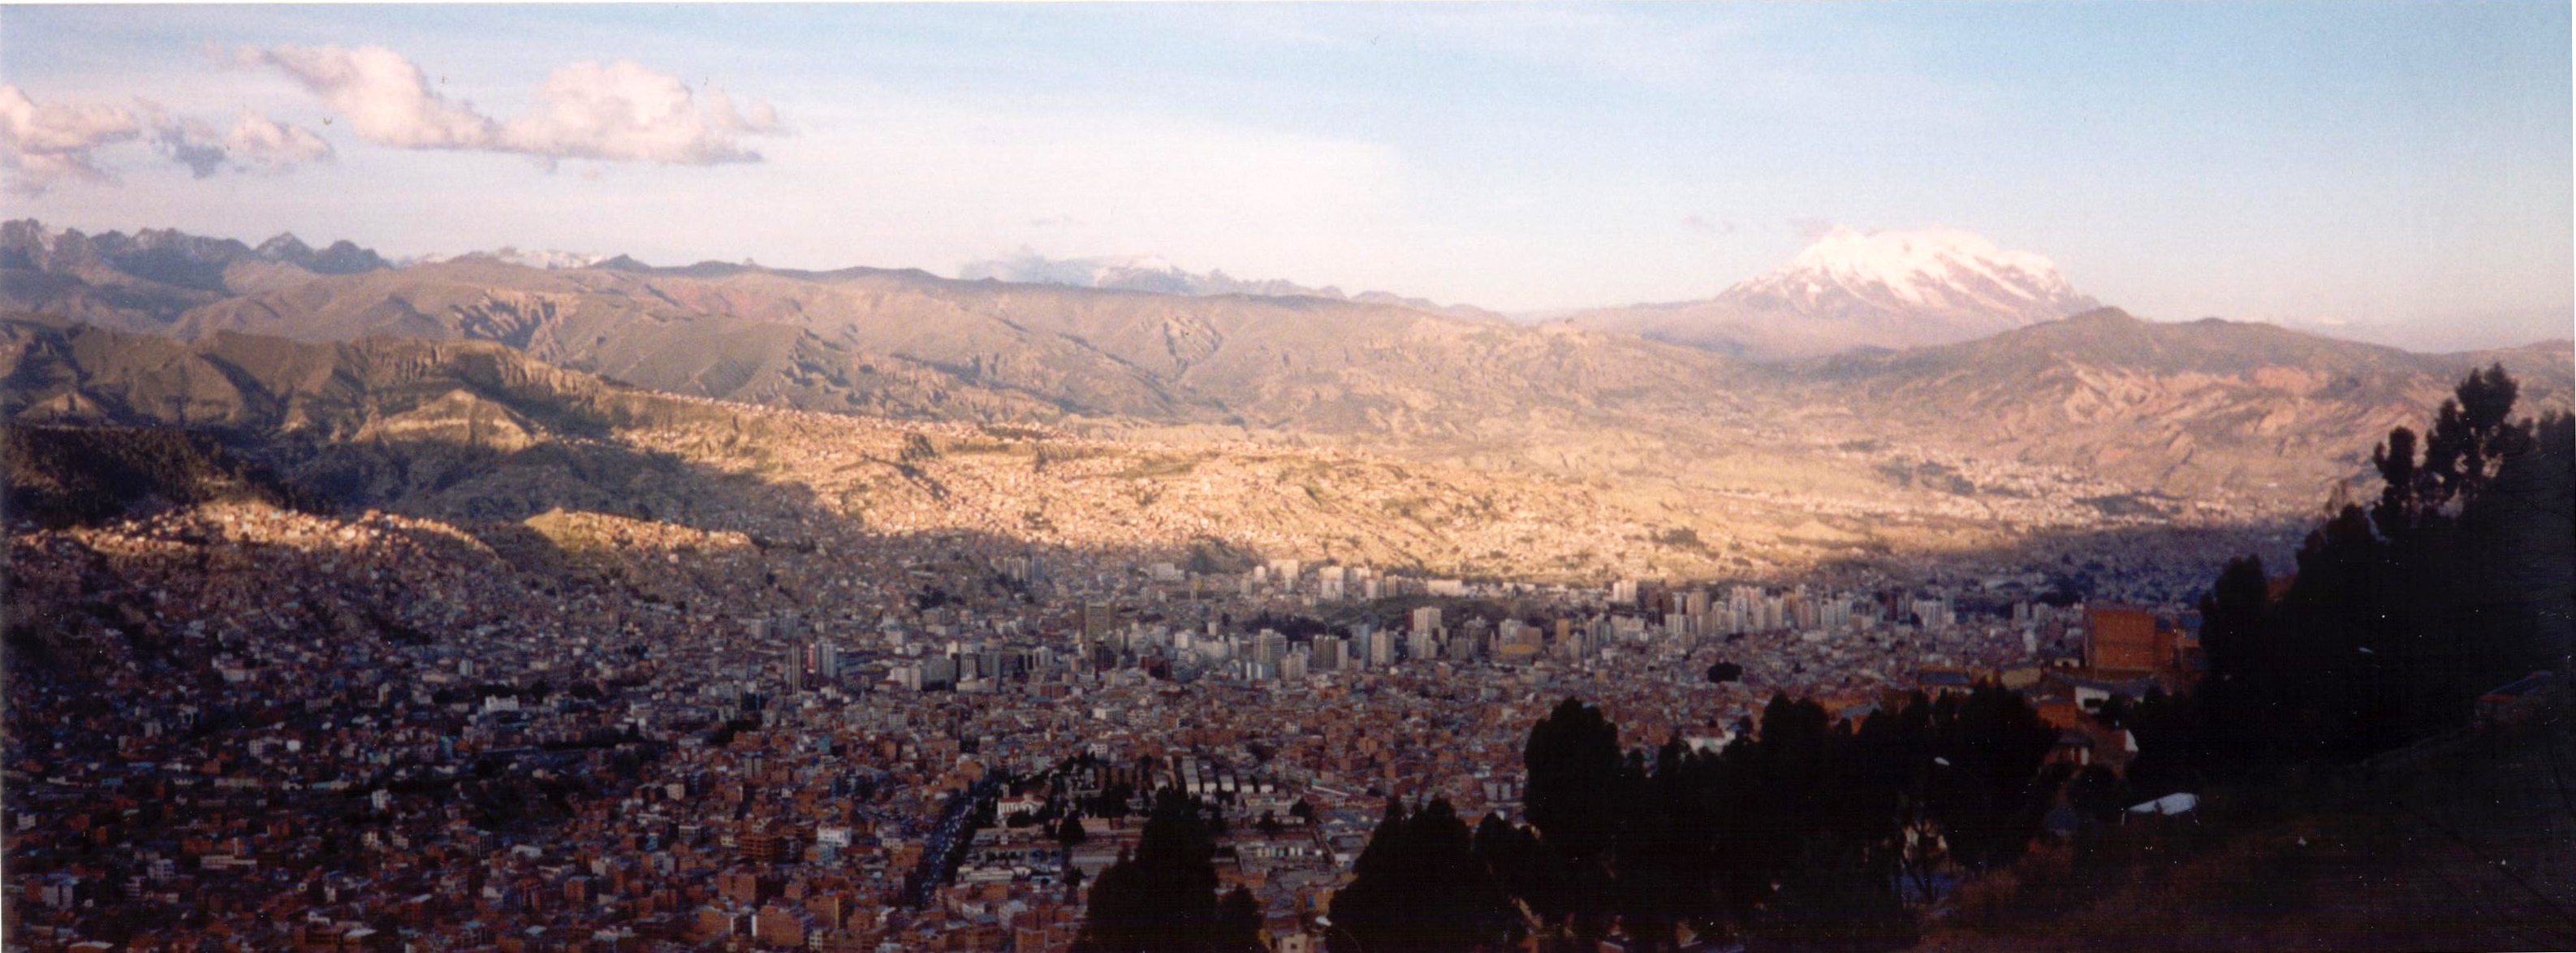 Looking down into La Paz with Illimani off in the distance